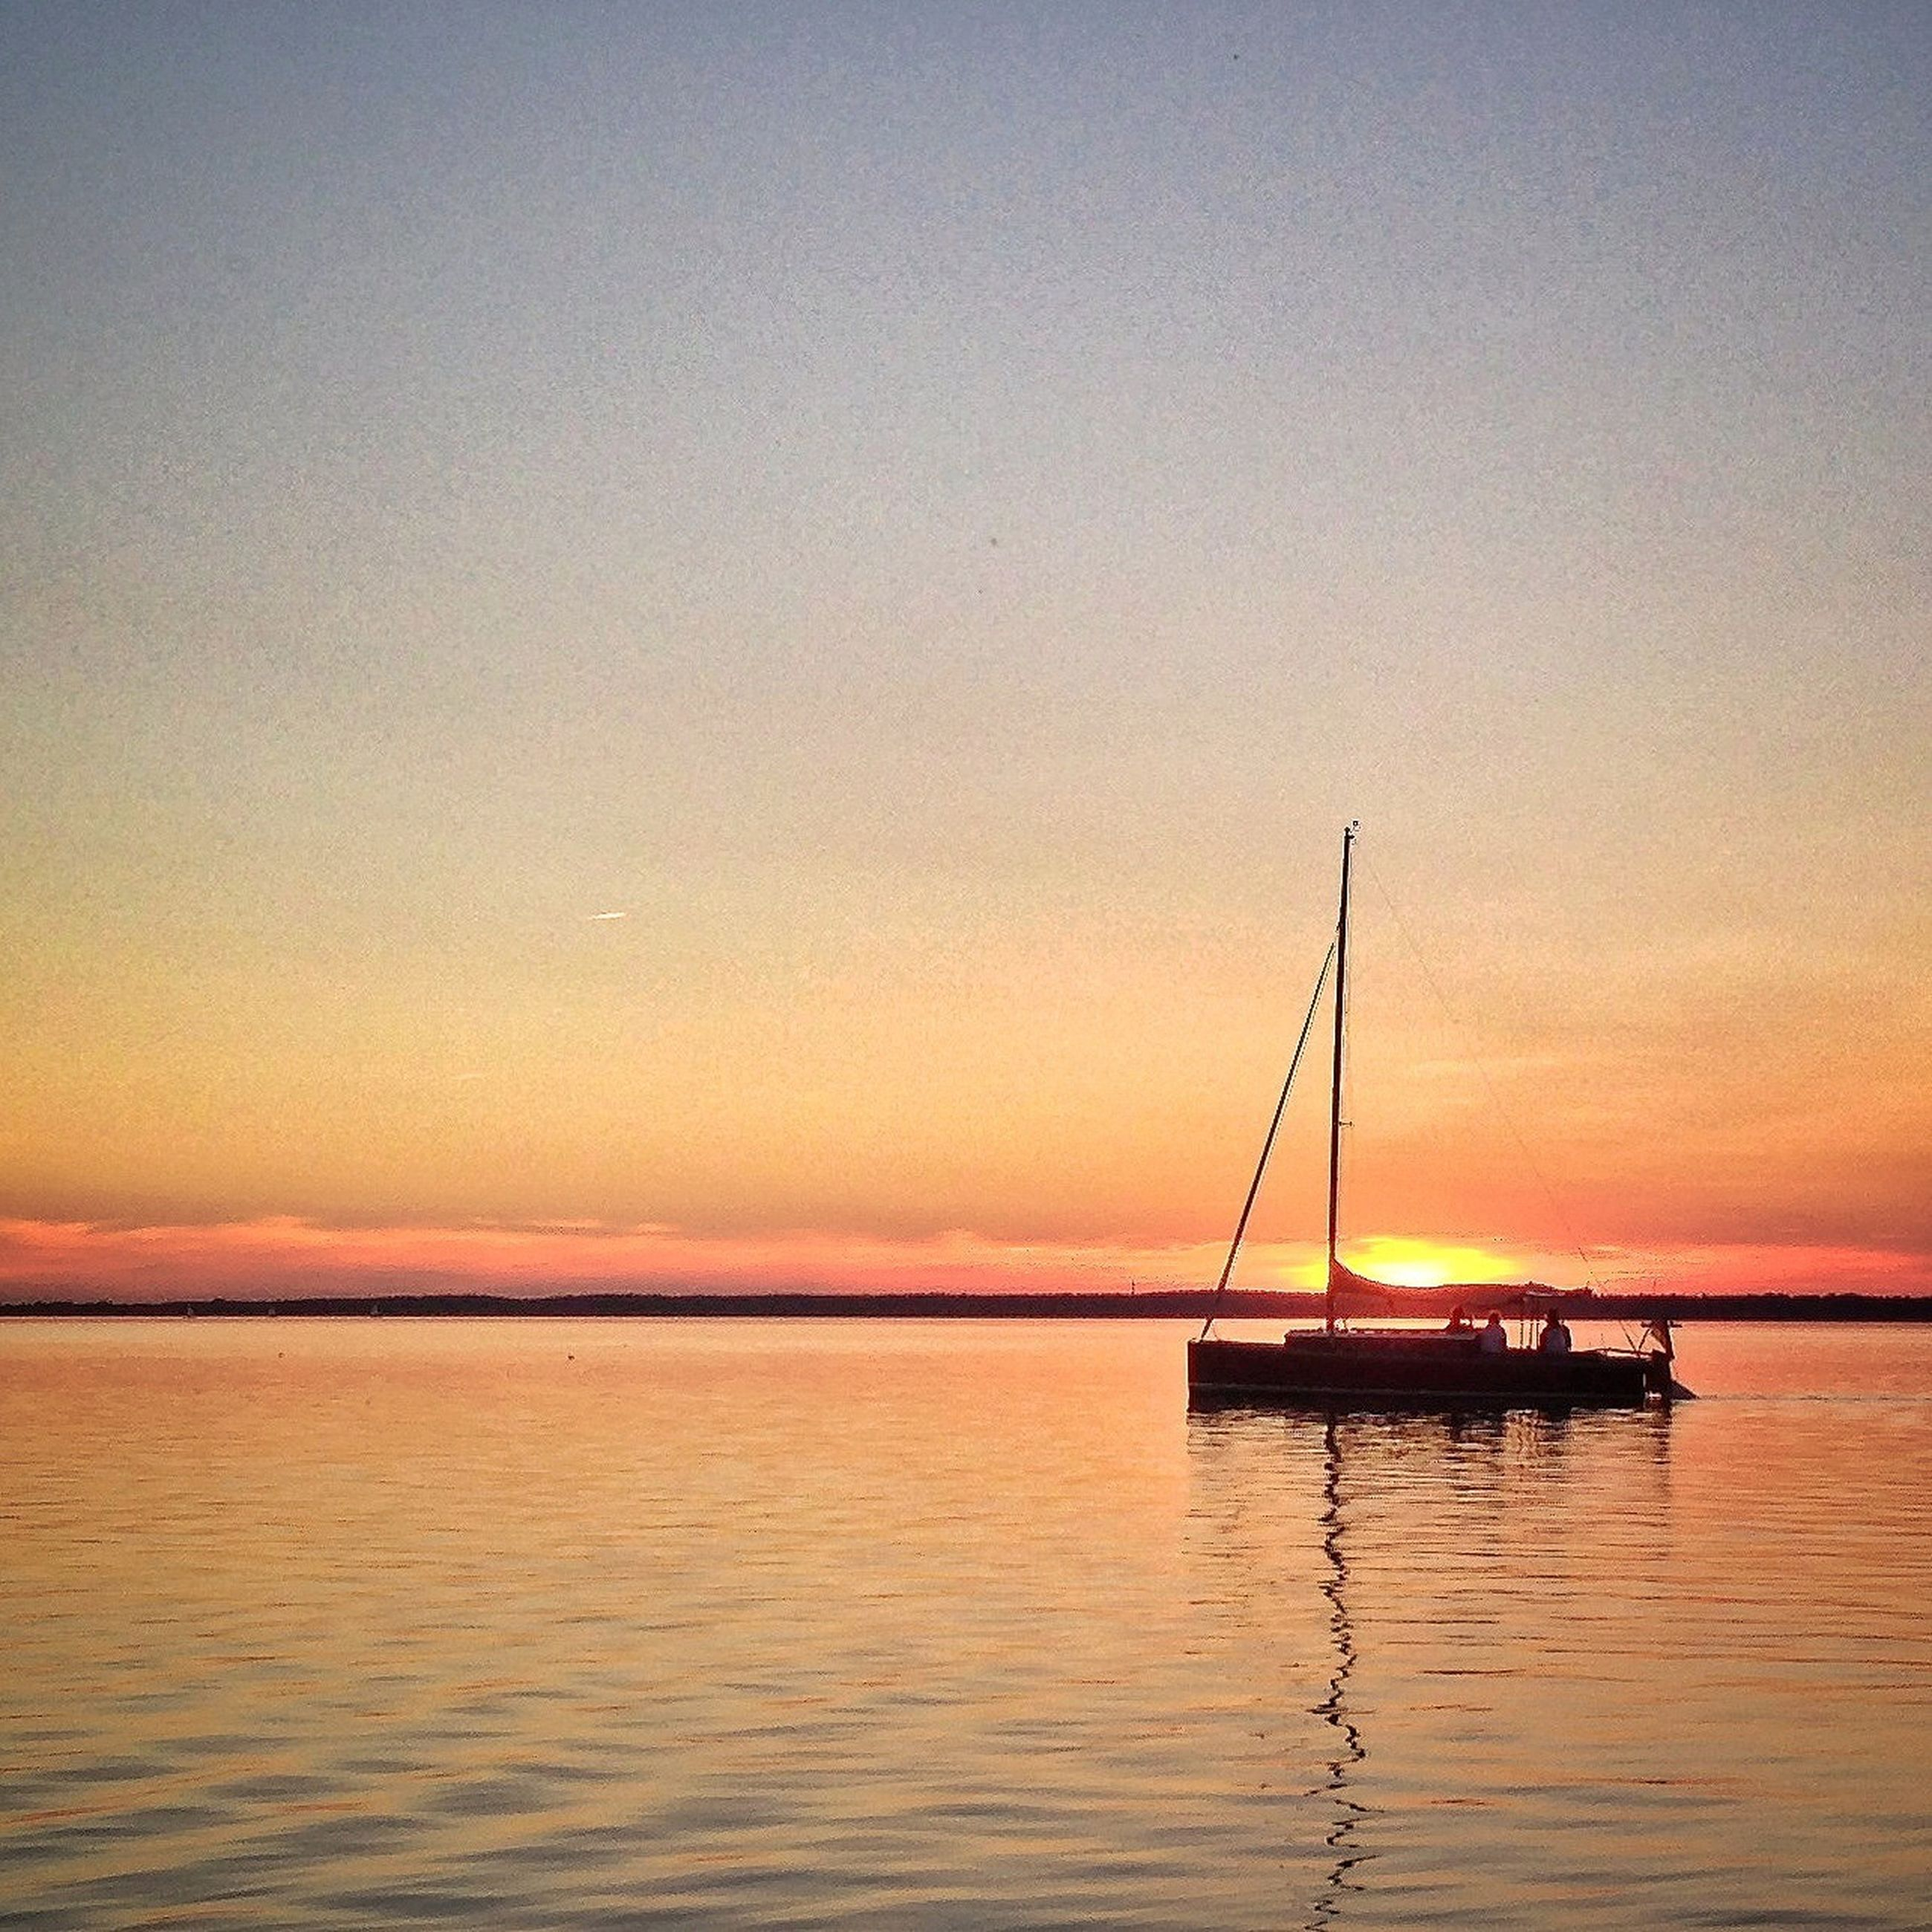 transportation, sunset, nautical vessel, water, mode of transport, boat, sea, waterfront, orange color, tranquil scene, tranquility, sailing, beauty in nature, scenics, sky, nature, silhouette, copy space, sailboat, horizon over water